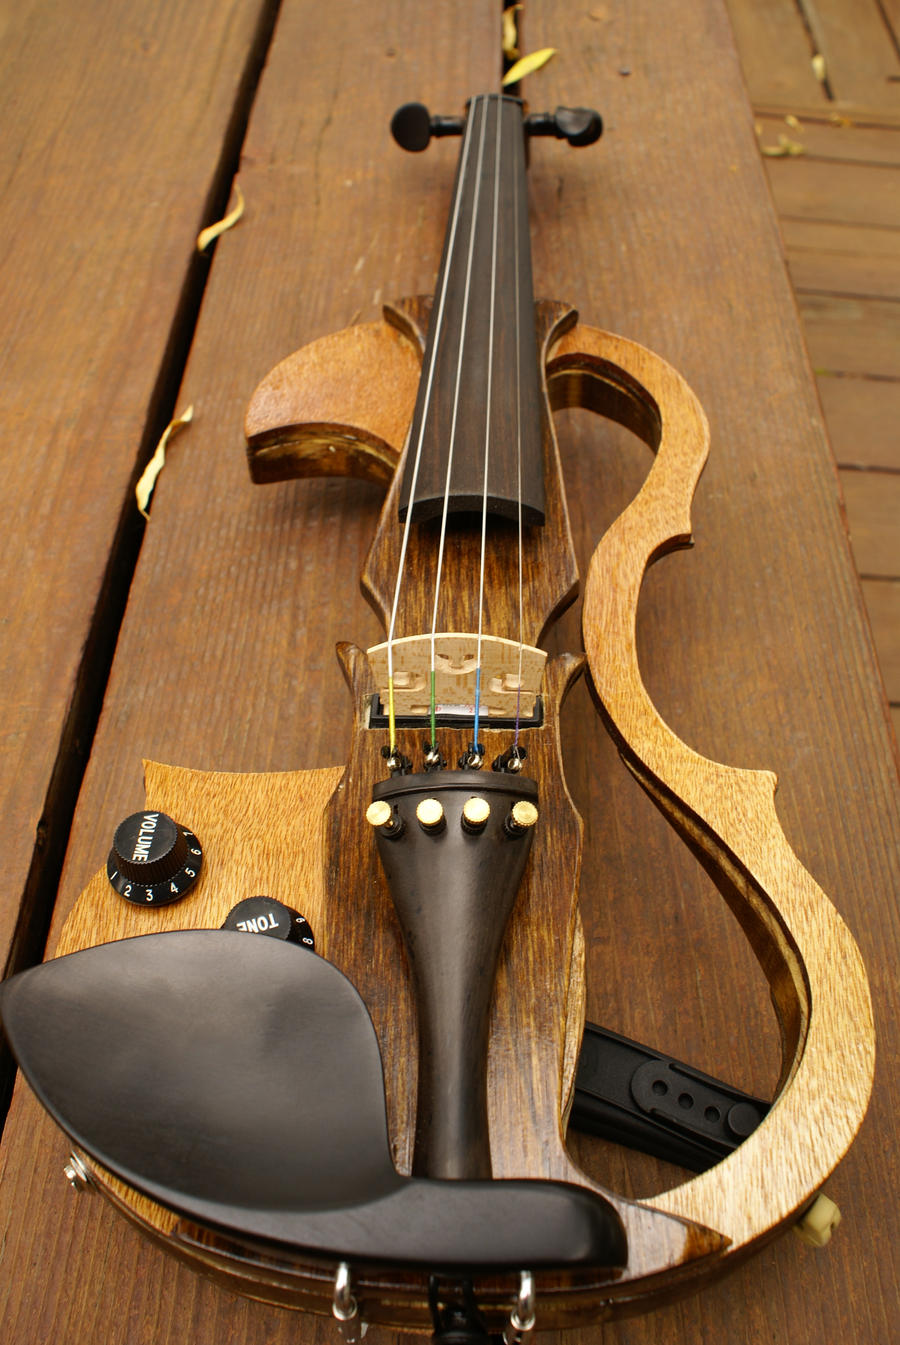 Homemade Violin 2.0 by Belize13 on